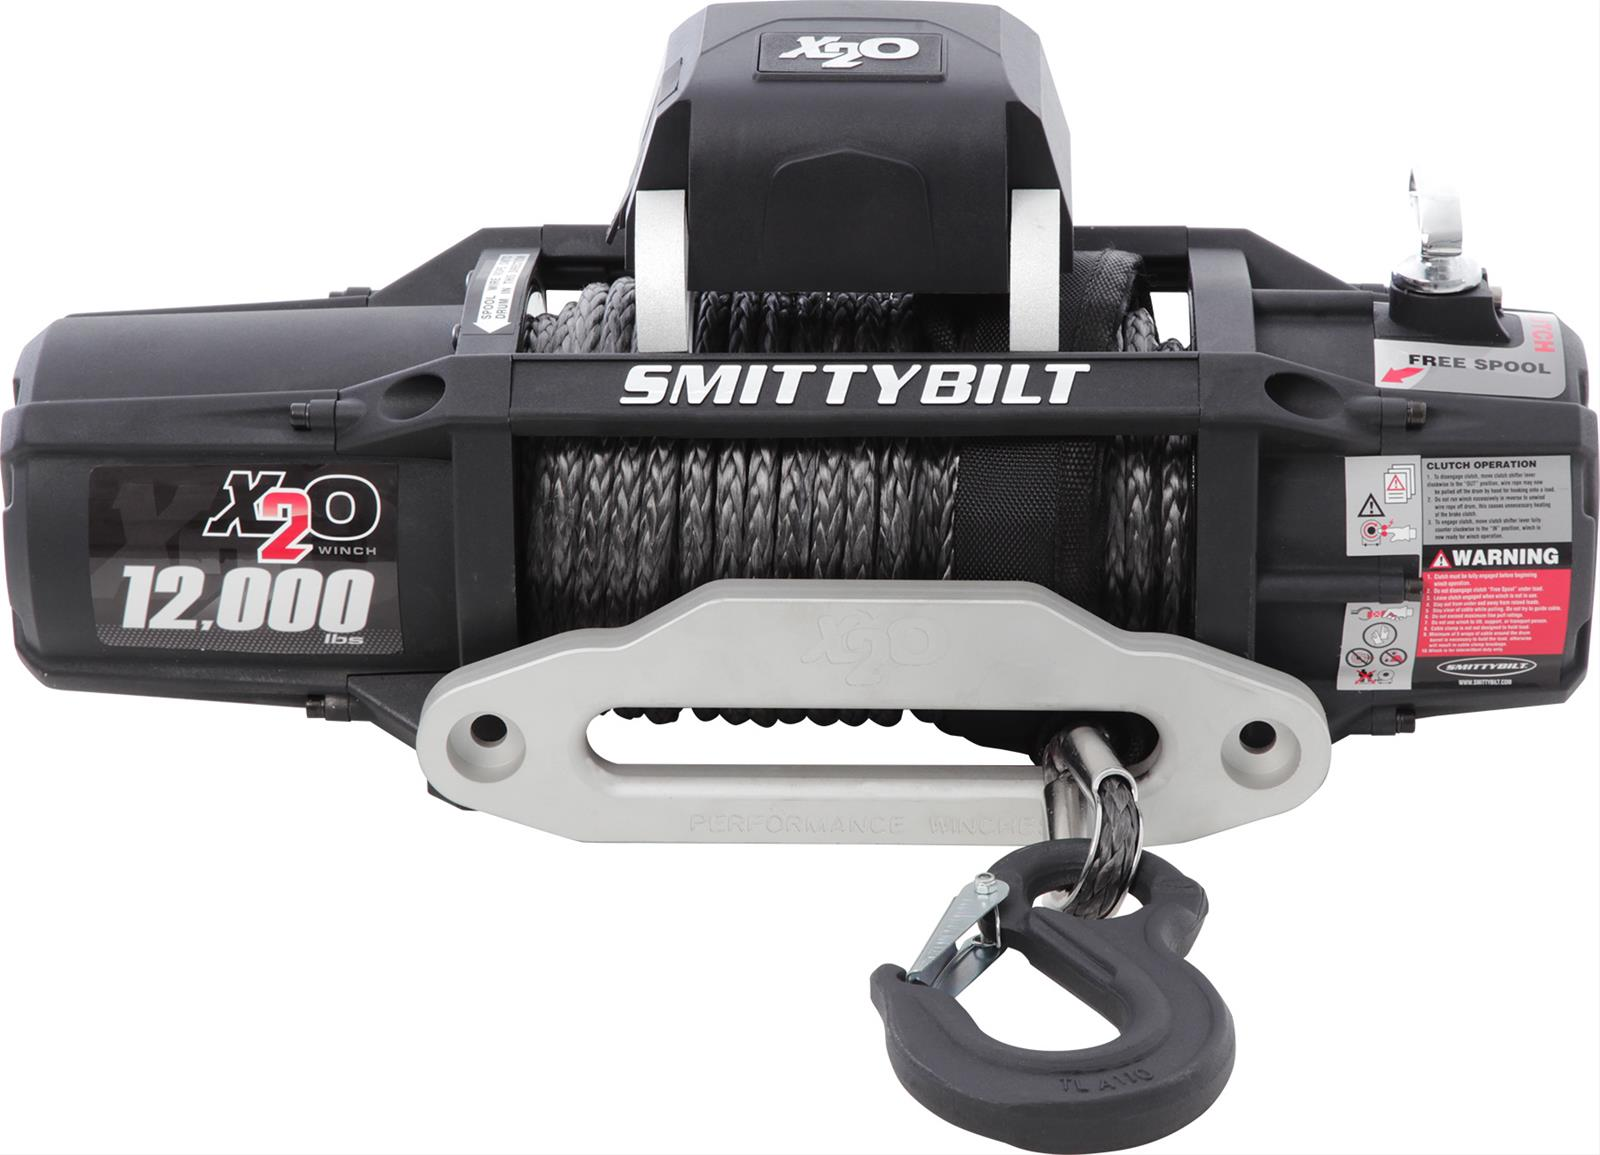 Smittybilt Gen2 X20 Comp Series Winches 98512 - Free Shipping on Orders  Over $49 at Summit Racing